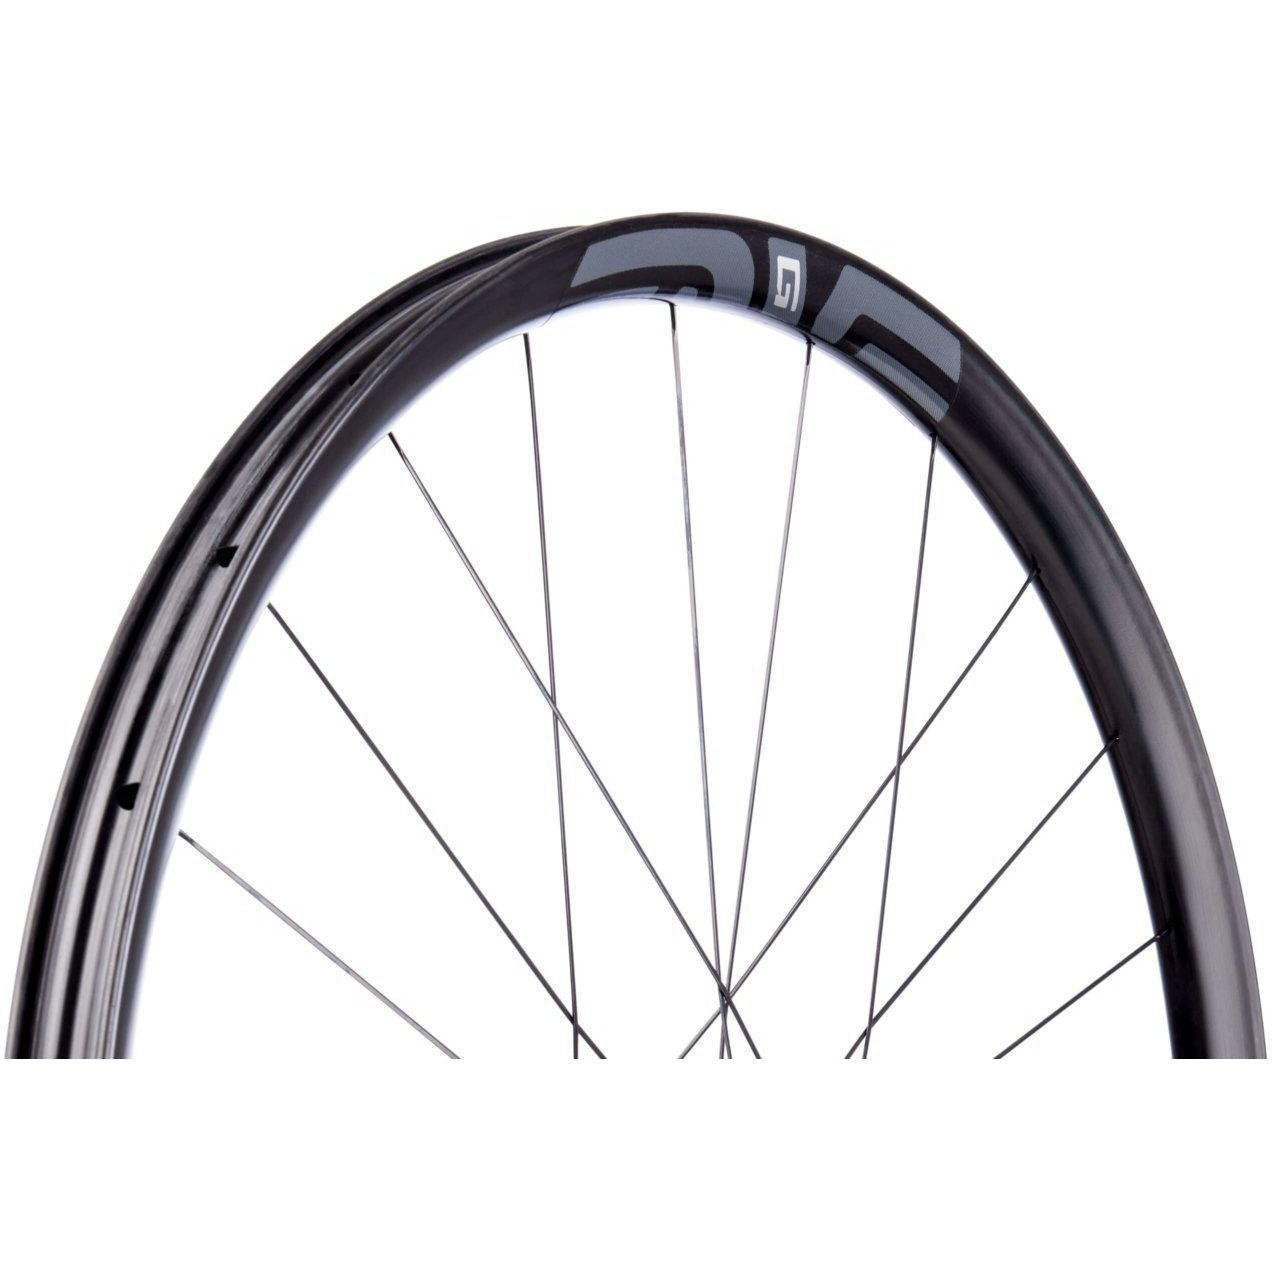 ENVE-ENVE G27 650b Gravel Wheelset - Chris King Hubs-EN00G271003112010-saddleback-elite-performance-cycling